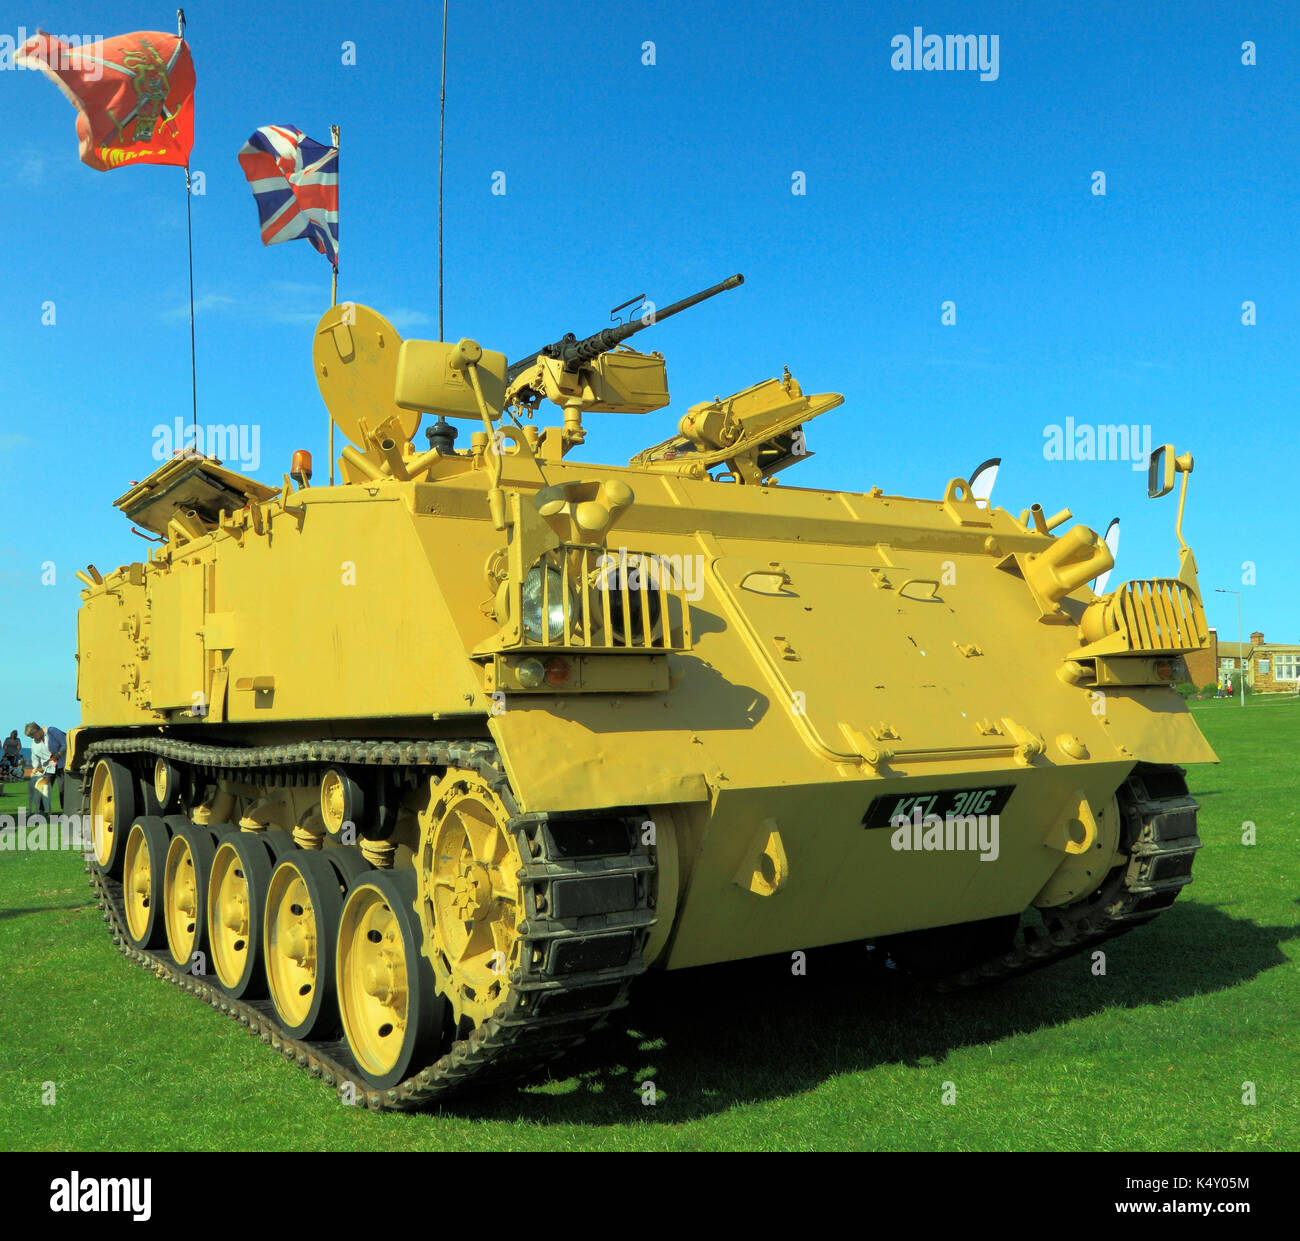 British Army 432 Tank, deployed in 1st Iraq War, military, vehicle, vehicles, tanks, England, UK - Stock Image